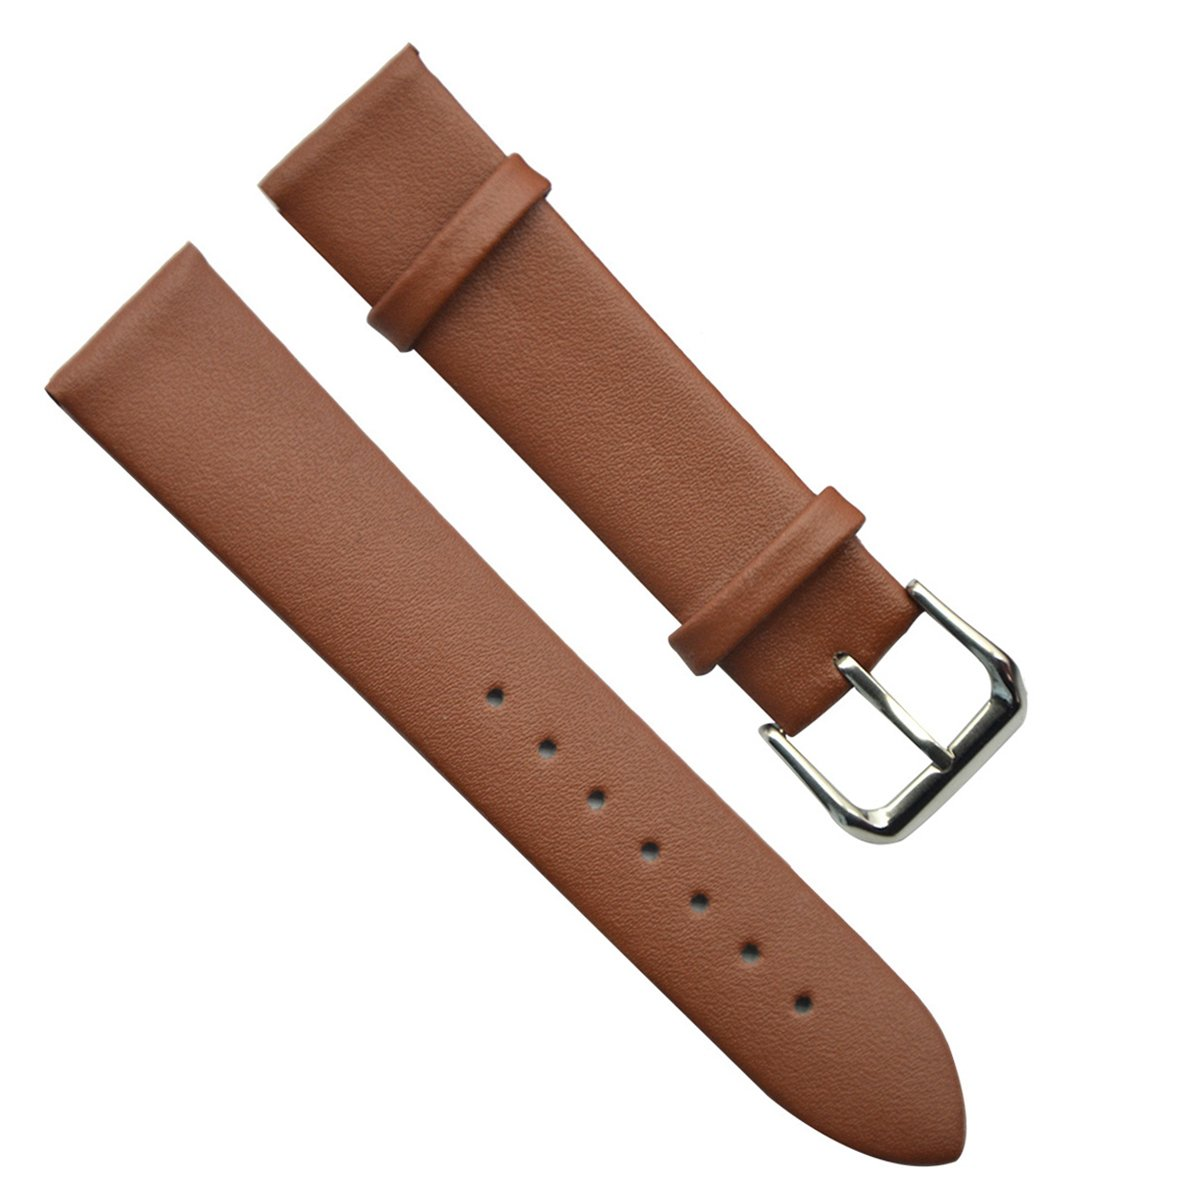 20mm Men's Vintage Regular Replacement Genuine Leather Silver Buckle Watch Strap/Watch Band stainless steel watch buckle band black deployment clasp strap belt metal relojes hombre 2017 replacement 16mm 18mm 20mm ome102